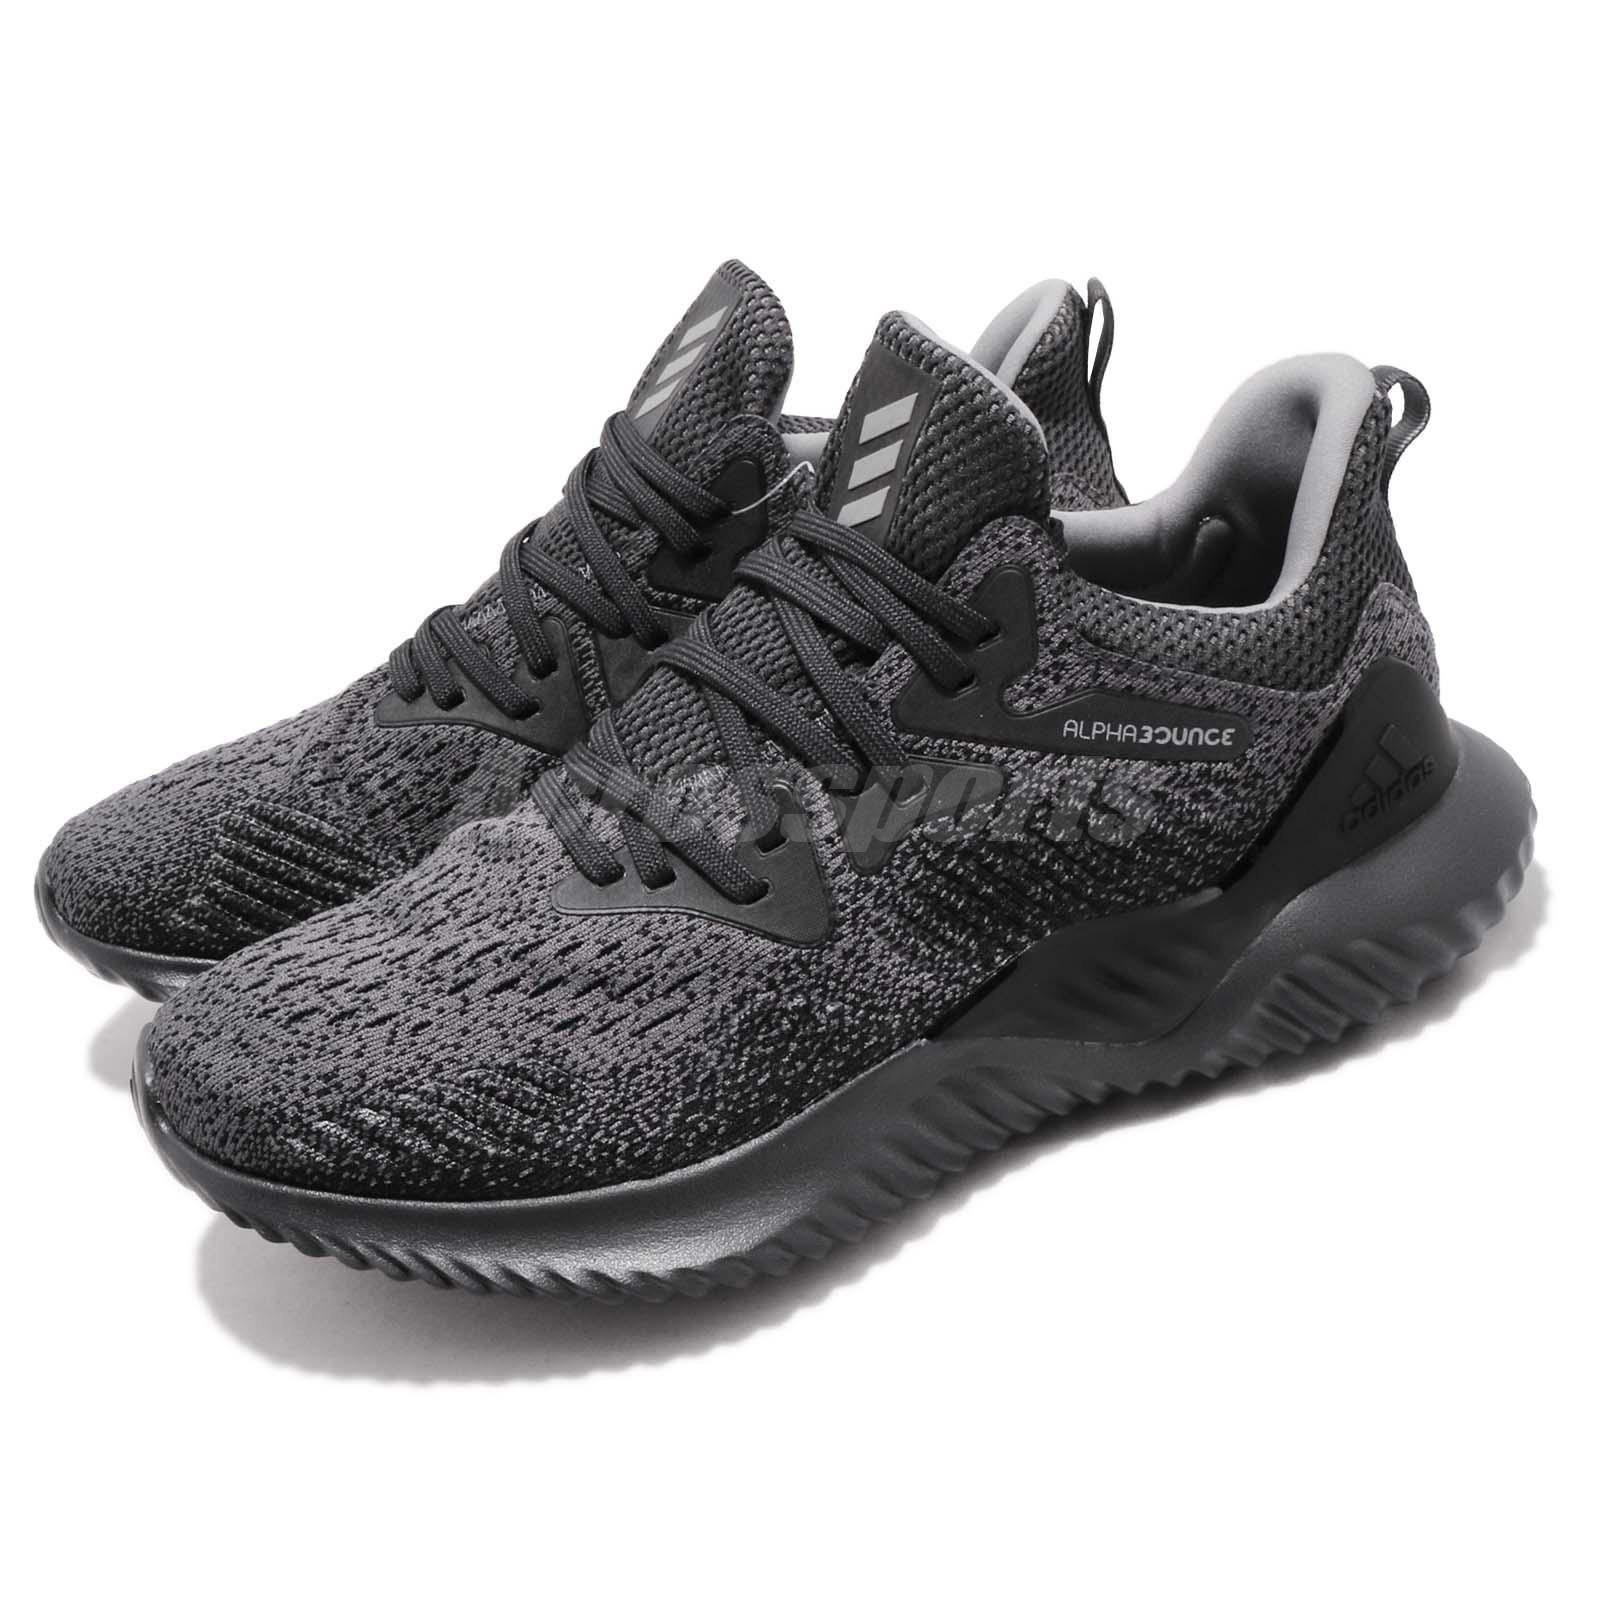 b65df0191a8a5 Details about adidas Alphabounce Beyond M Carbon Grey Men Running Training  Shoe Sneaker AQ0573